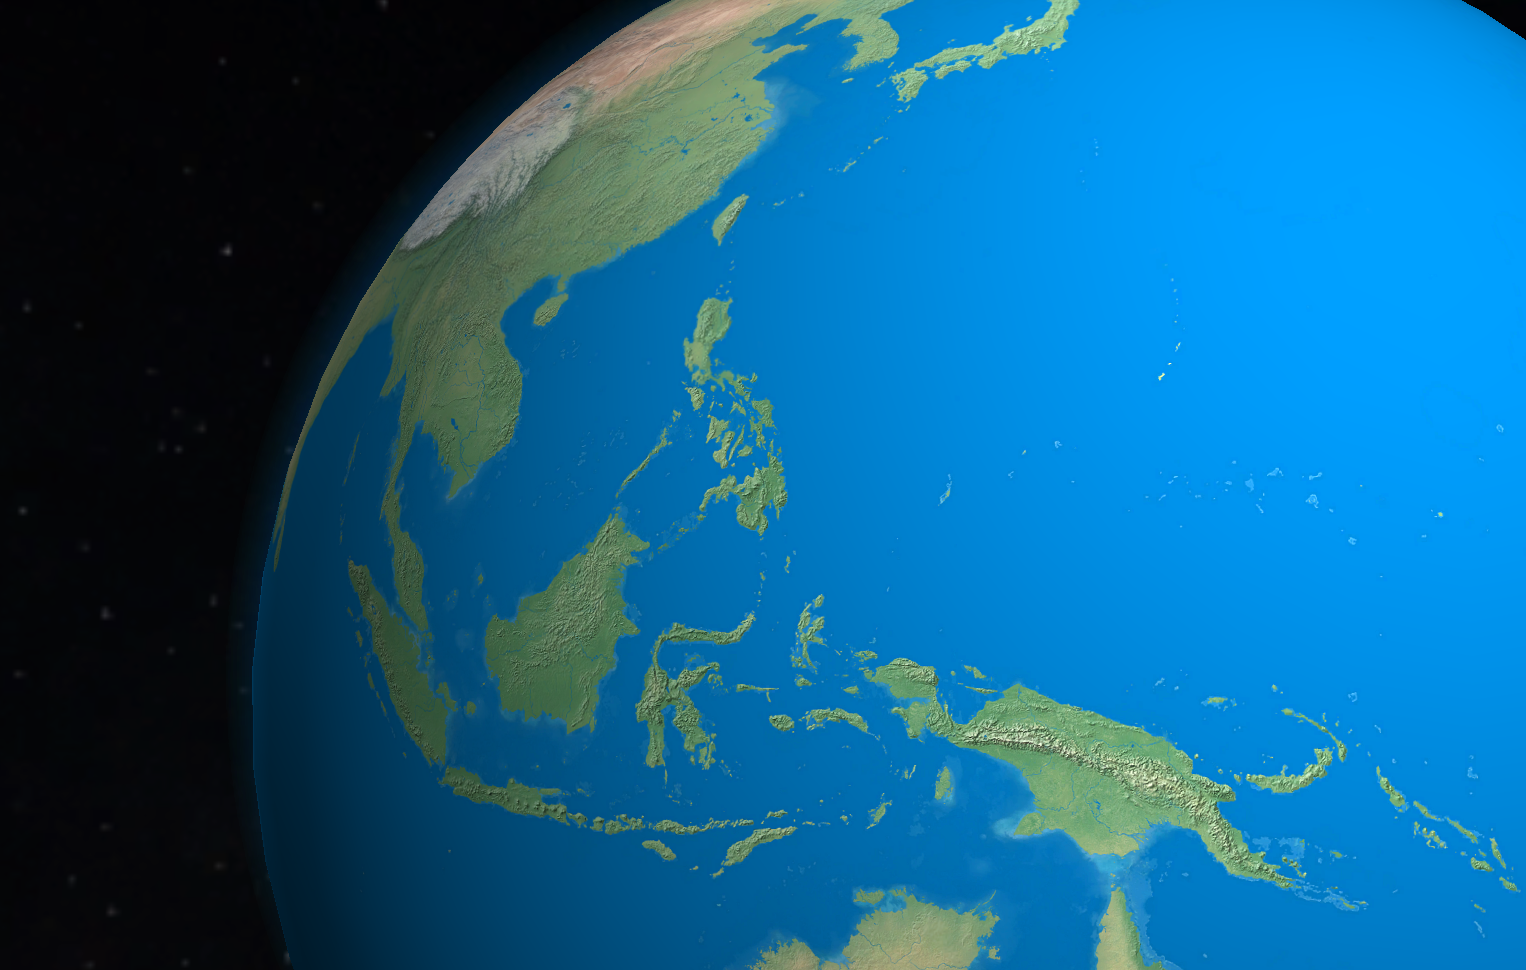 Philippines from space. Made with Globe Master 3D | Earth ... on earth map philippines, satellite view of philippines, google street view philippines, quirino province philippines, global map philippines, google map s, asian cruise from philippines, zomato philippines, google taiwan website, driving directions in philippines, it's more fun in the philippines, mindanao philippines, world map philippines, detailed map philippines, map of philippines, cnn news philippines, google search, mindoro map philippines, google earth, google satellite philippines,